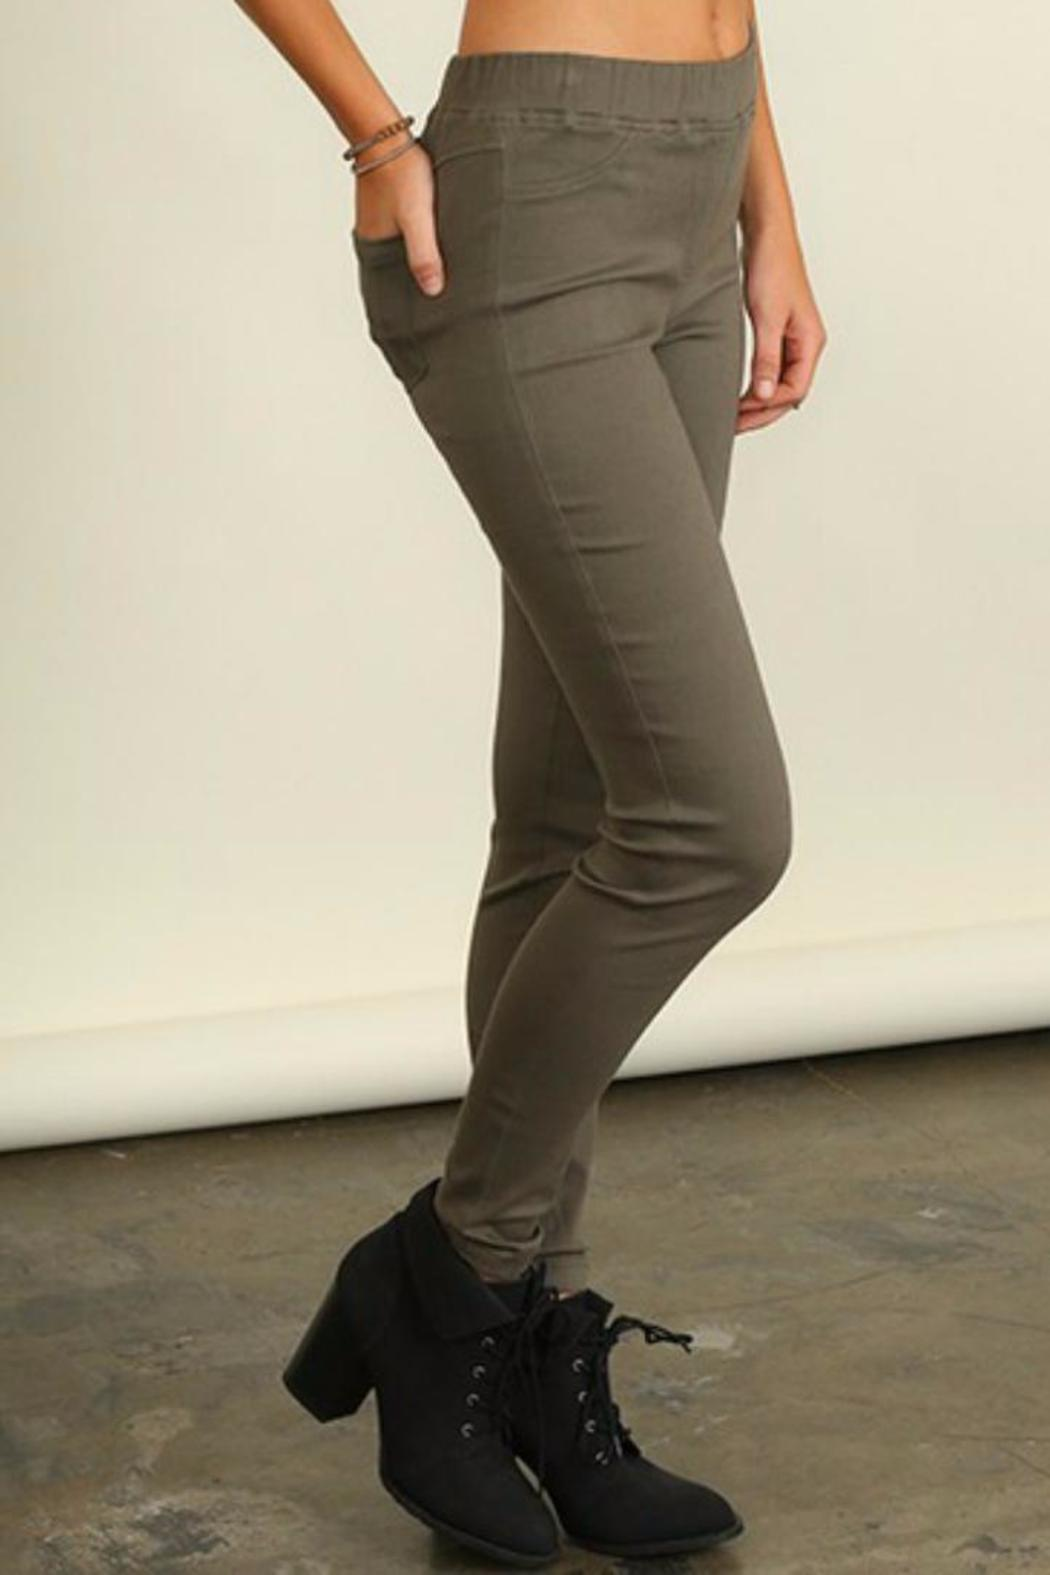 d83aa84515f67 Umgee USA High Waist Legging from Mississippi by Irie Boutique ...